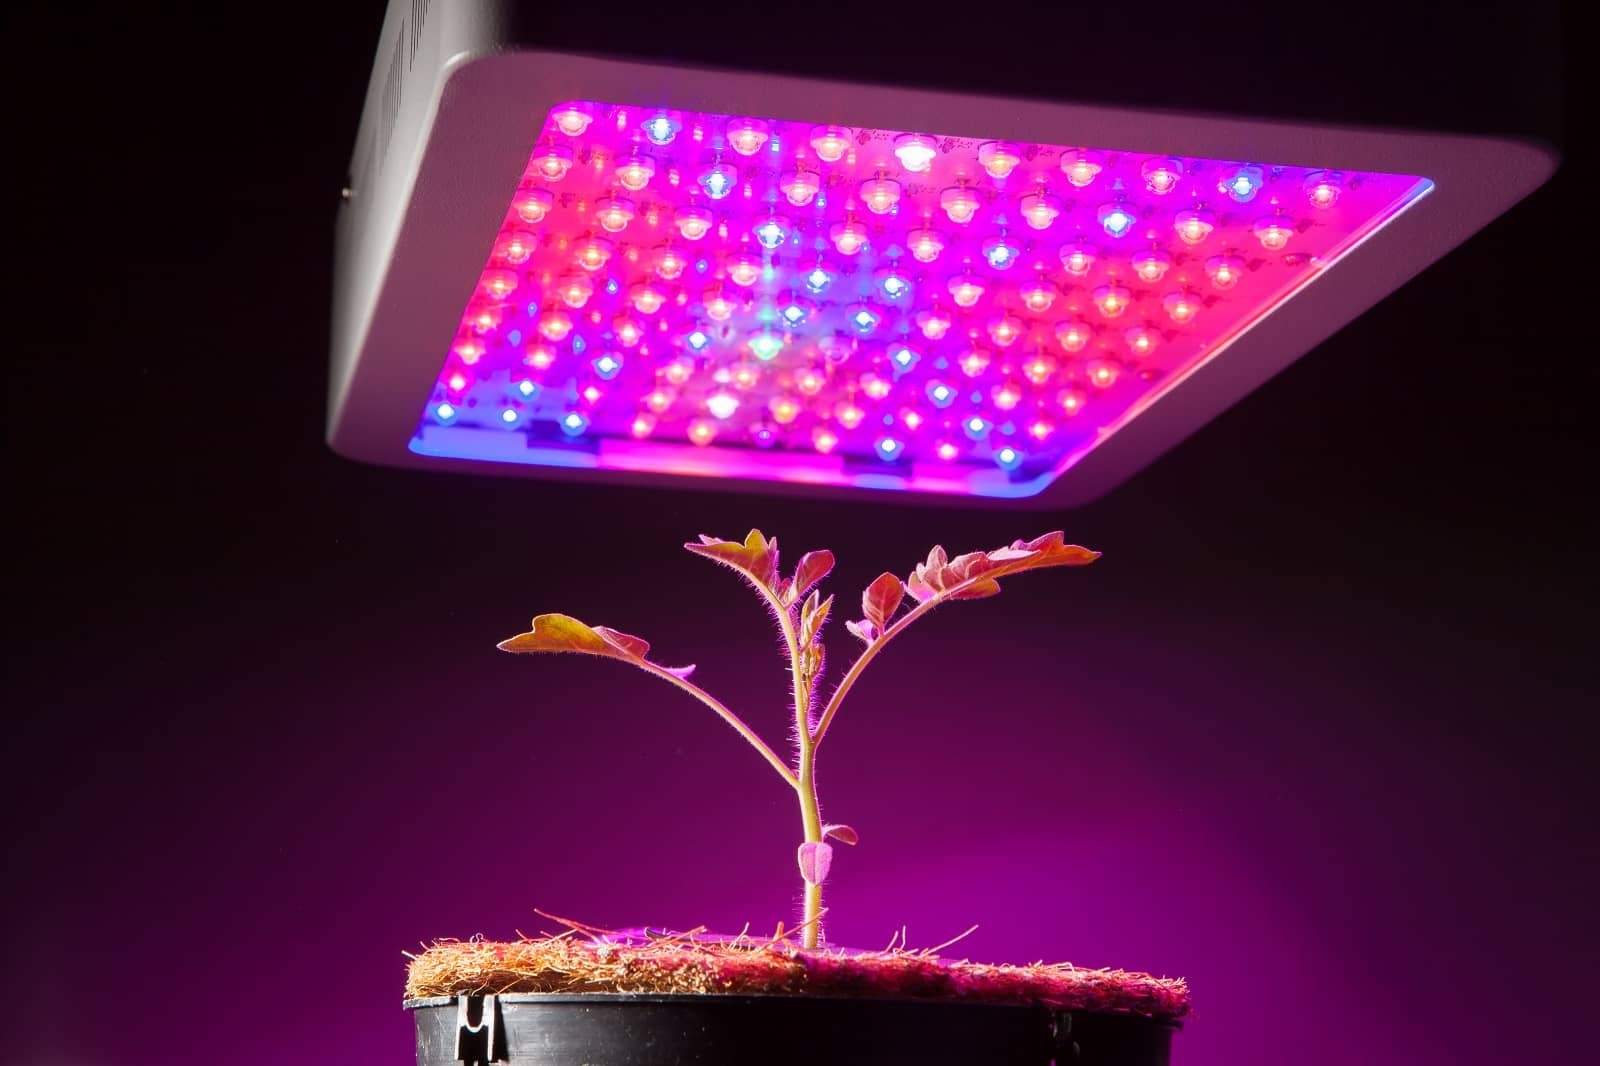 https://devices4home.com/wp-content/uploads/2019/03/grow-lights-min.jpg